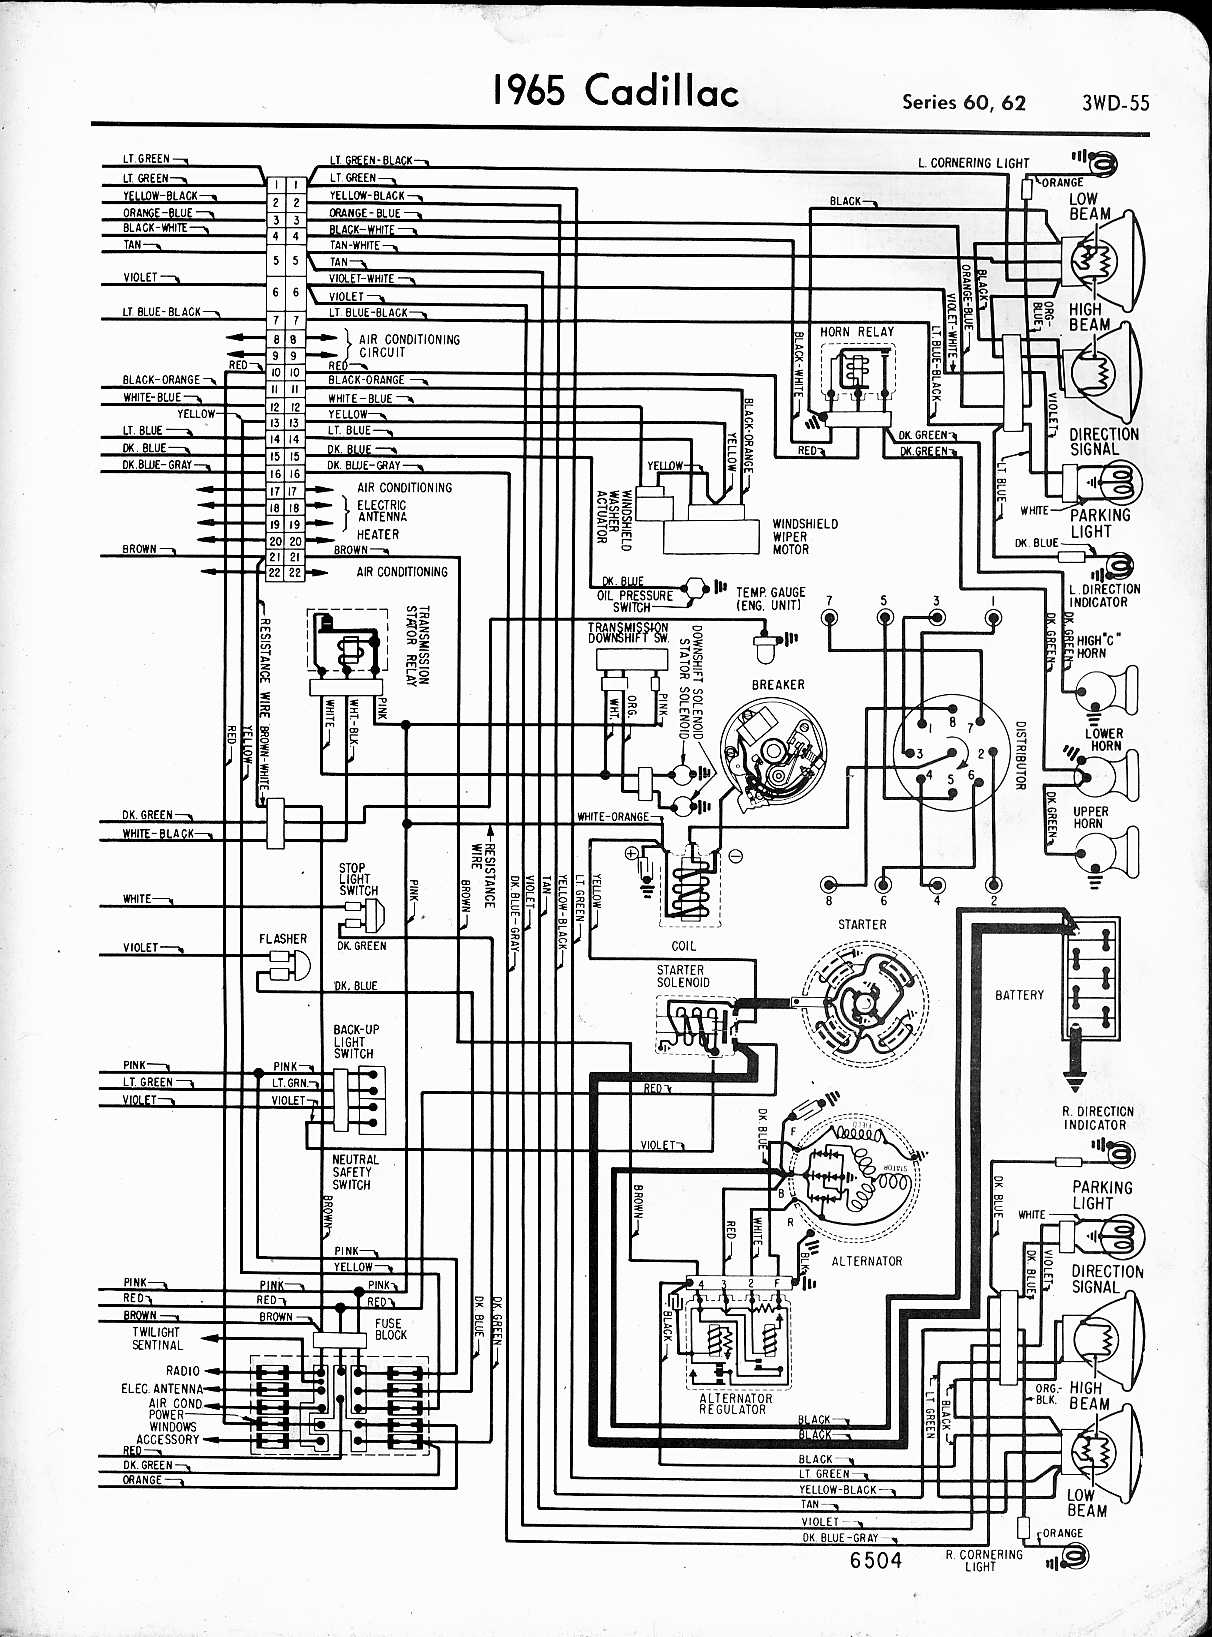 65 Mopar Ignition Wiring Diagram Library 4 Wire Range Schematic 1965 Series 6062 Right Cadillac Diagrams